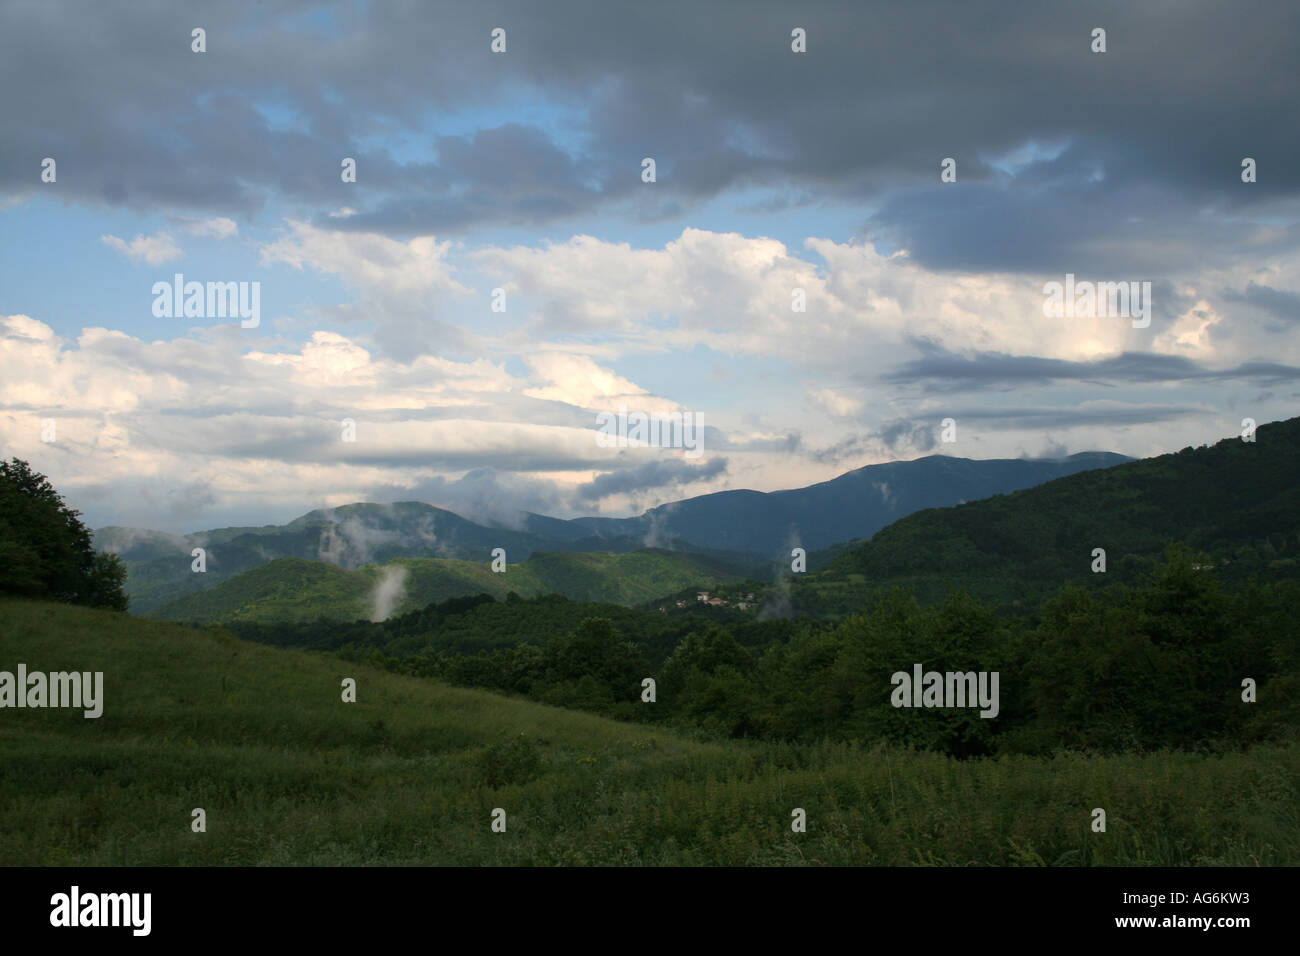 Bulgaria Mountains the Stara Planina - Stock Image